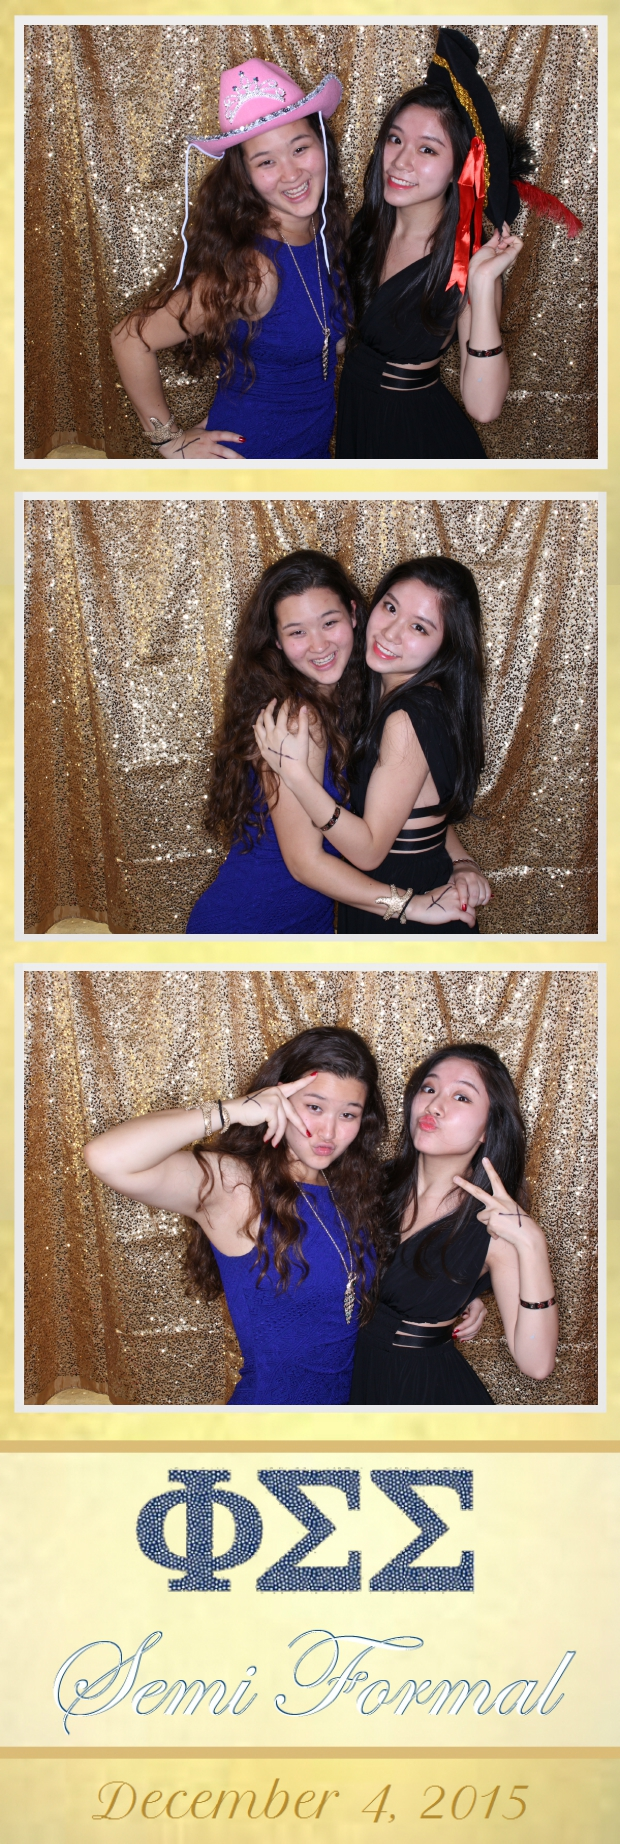 Guest House Events Photo Booth Phi Sigma Sigma Semi Formal (22).jpg